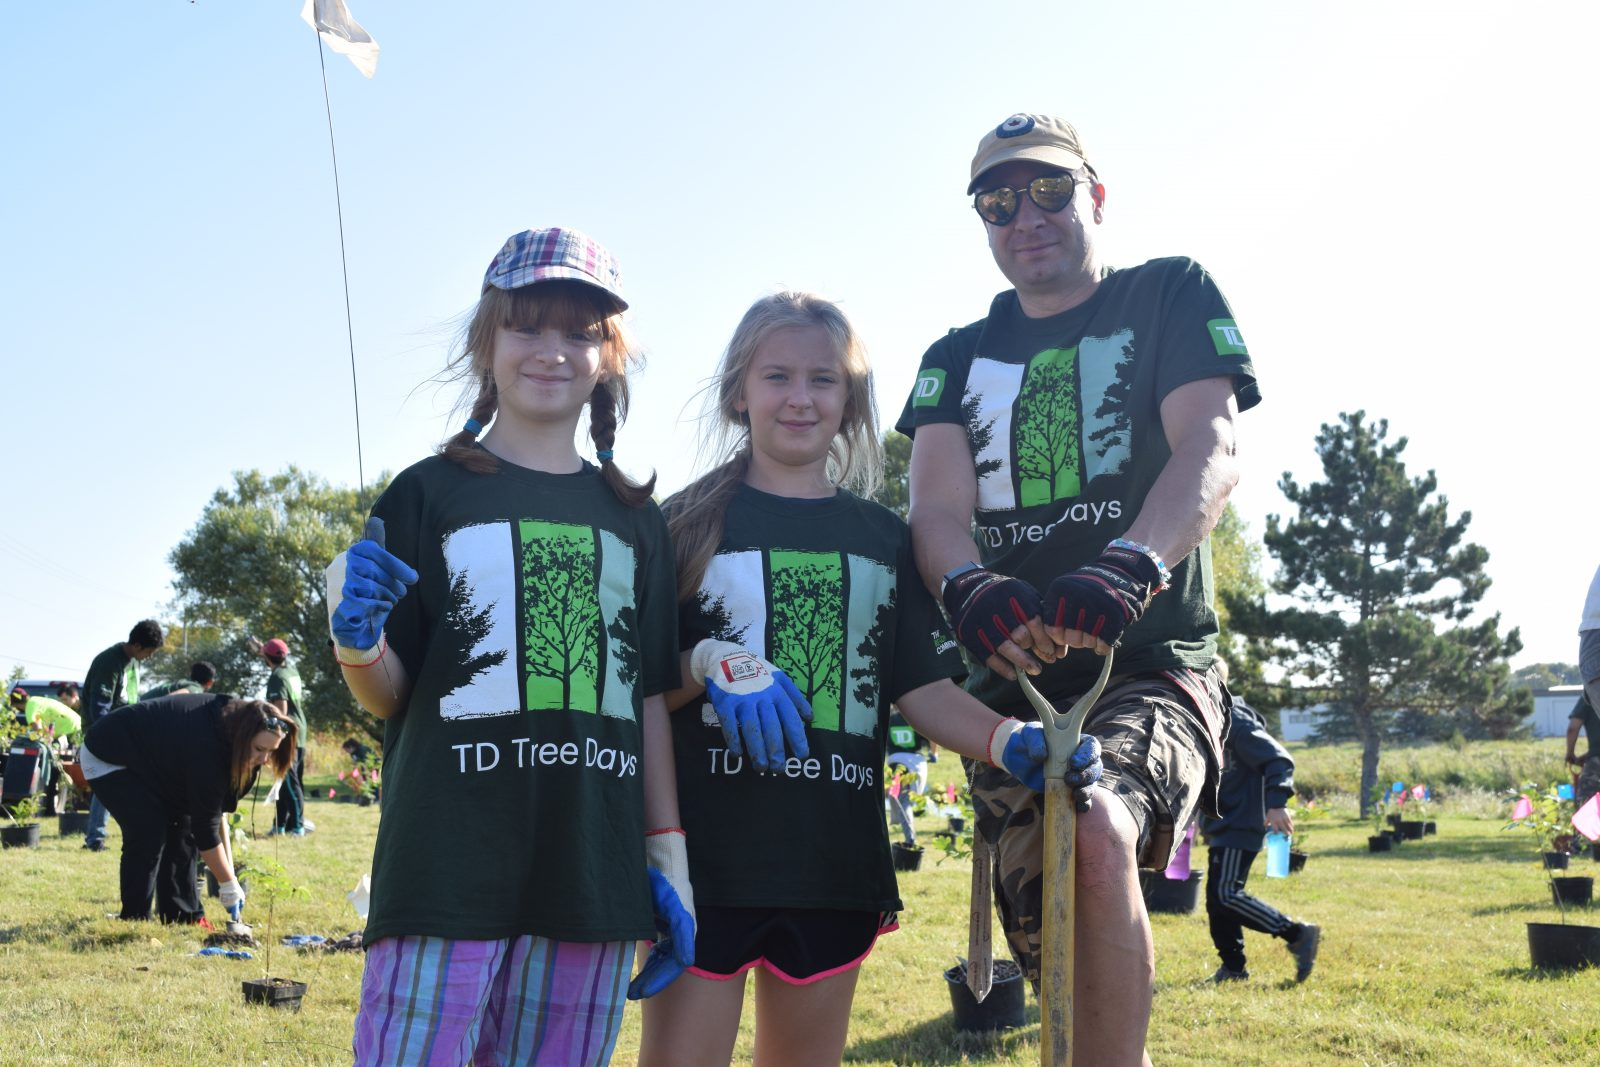 Hundreds of trees planted at TD Tree Days